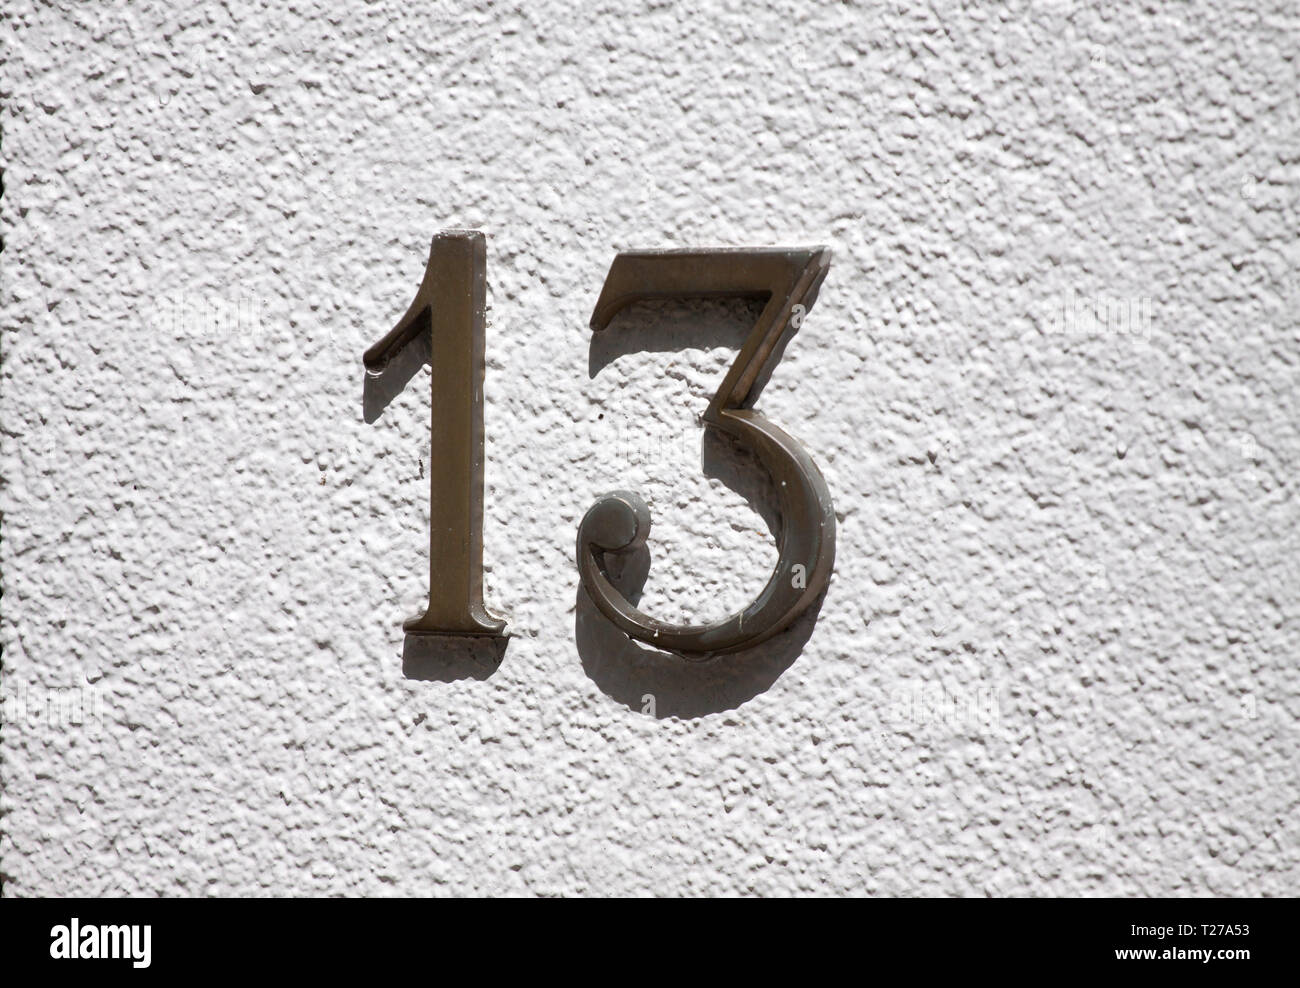 Brass house number 13 screwed on a white wall - Stock Image